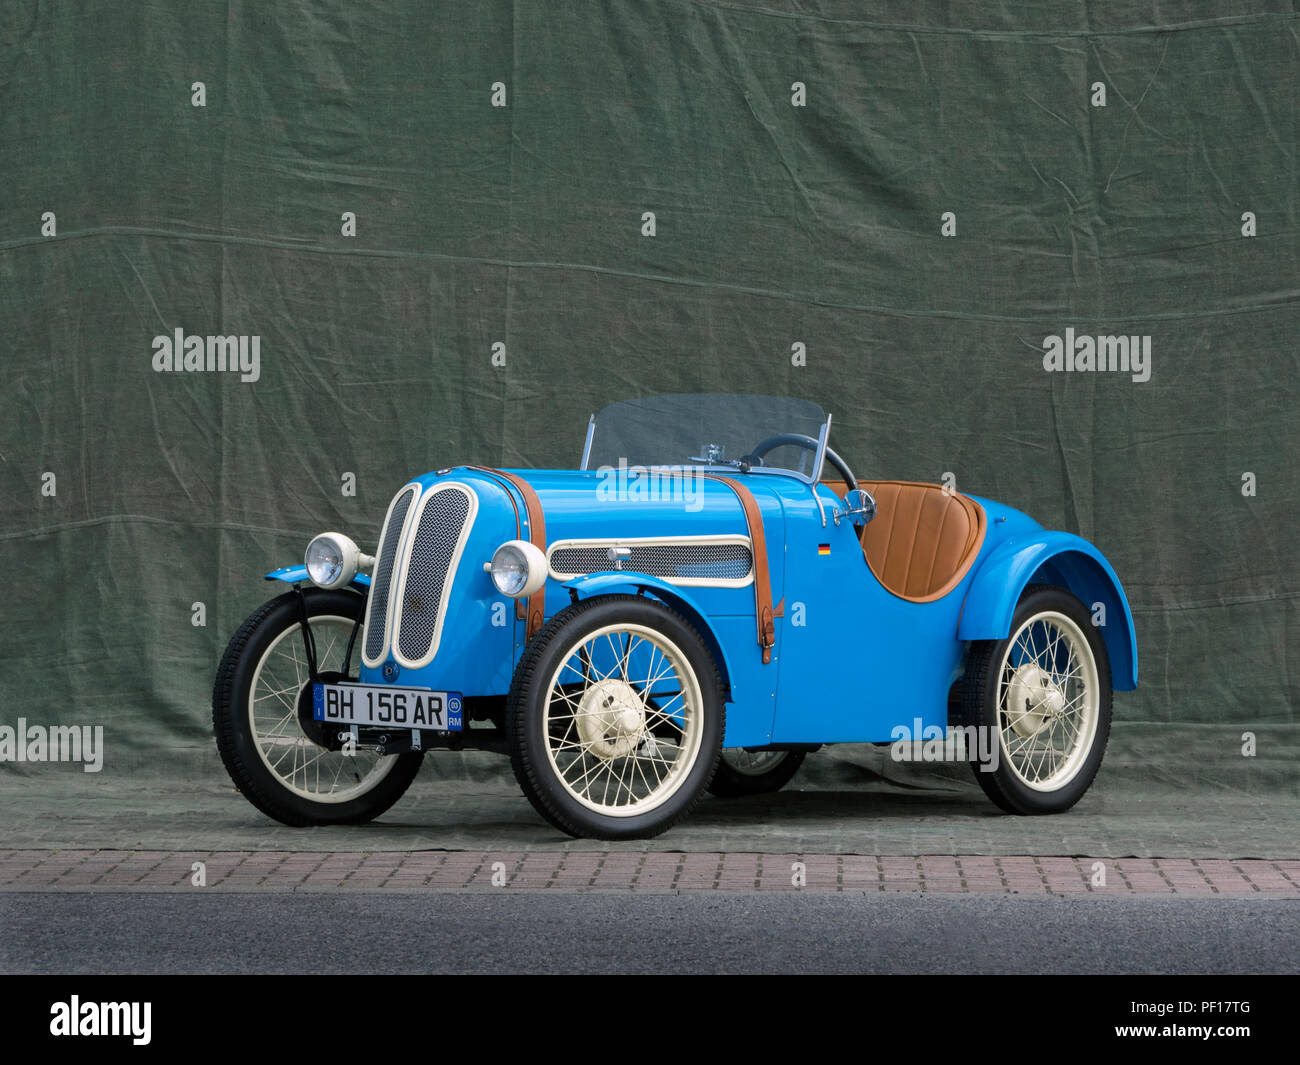 1931 bmw dixi sport typ 600 stockfoto bild 215772384 alamy. Black Bedroom Furniture Sets. Home Design Ideas